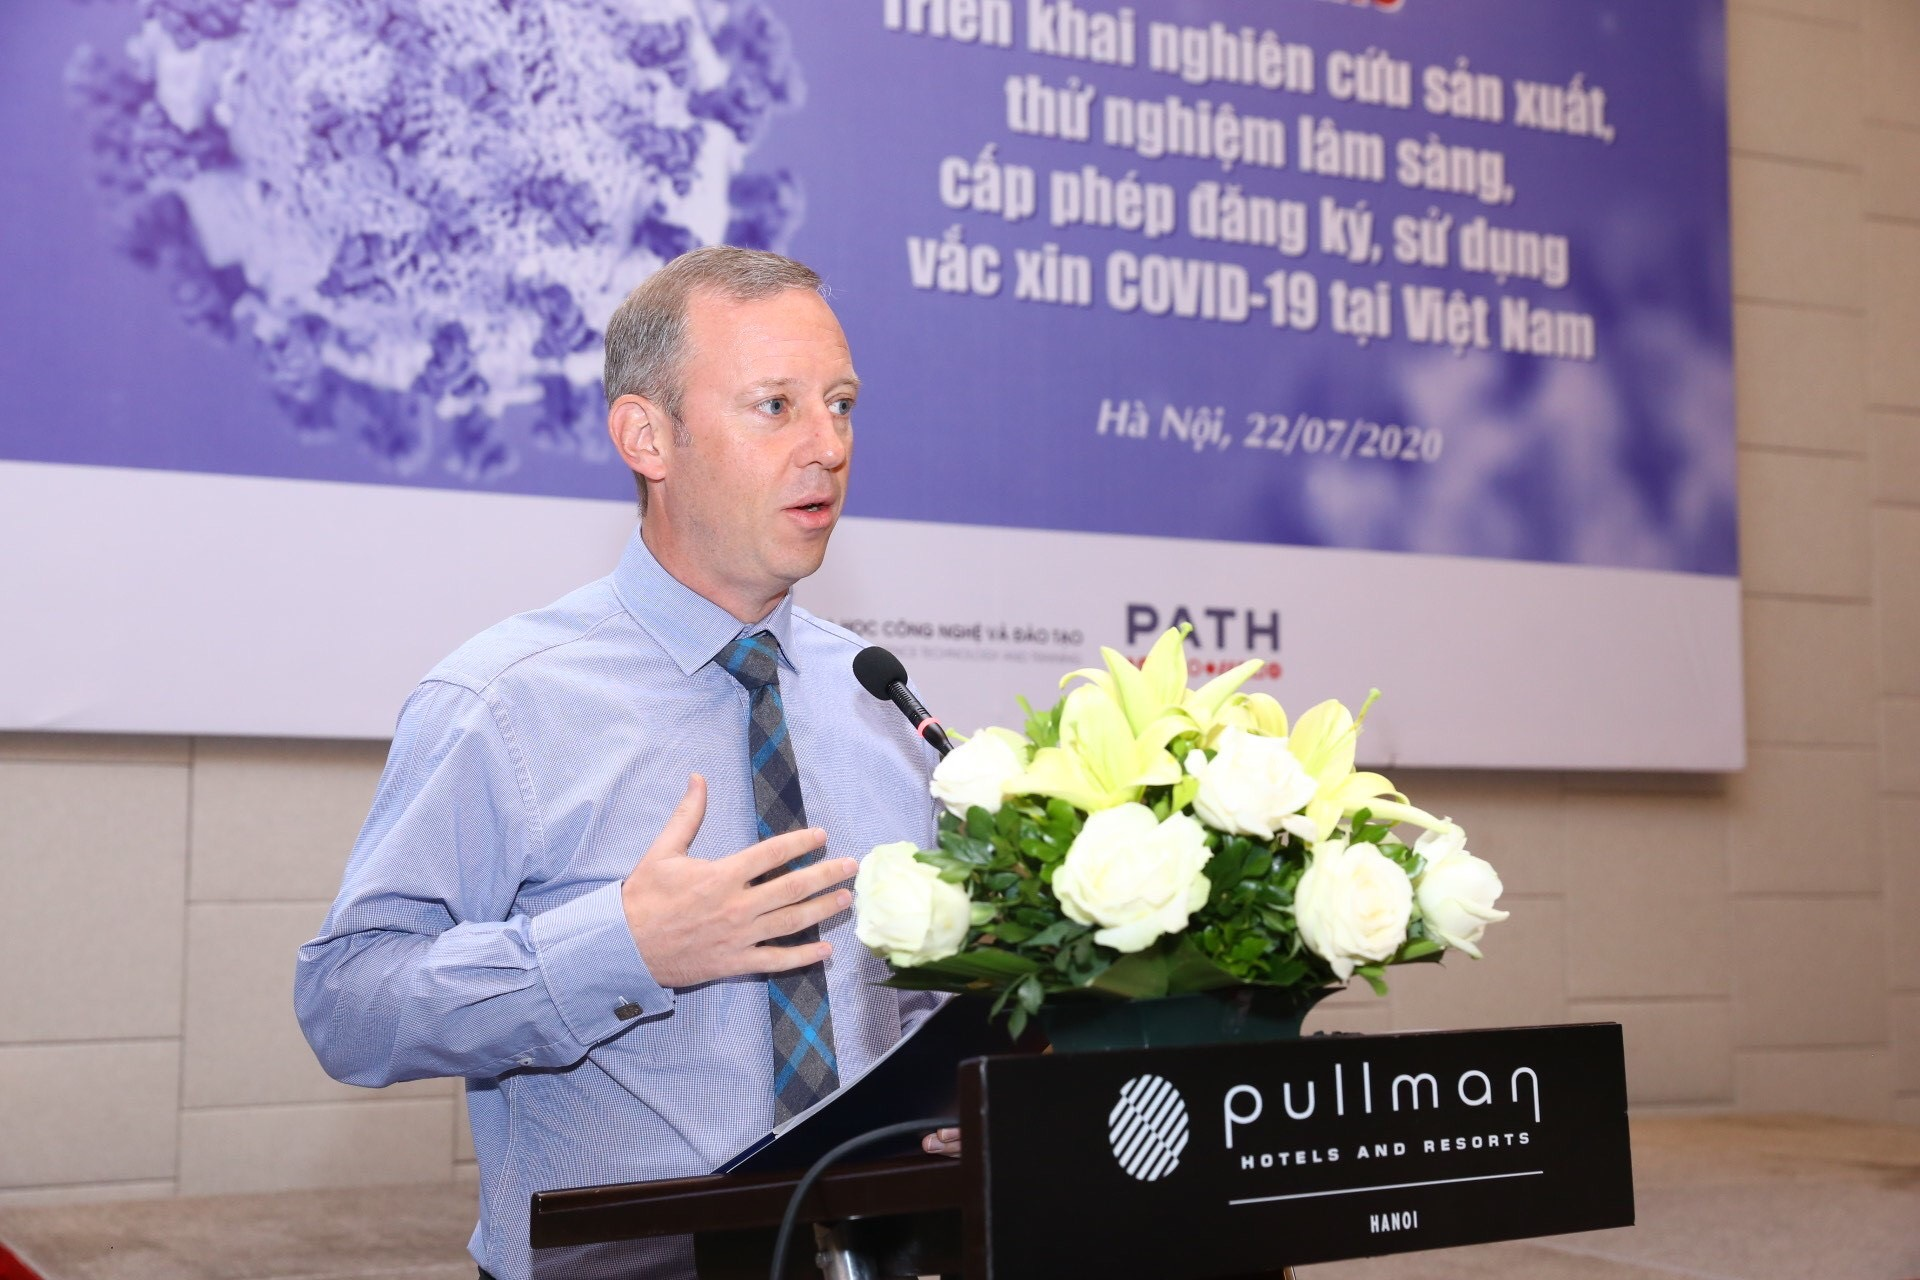 Vietnam, UK working on fair, equitable access to COVID-19 vaccine: diplomat